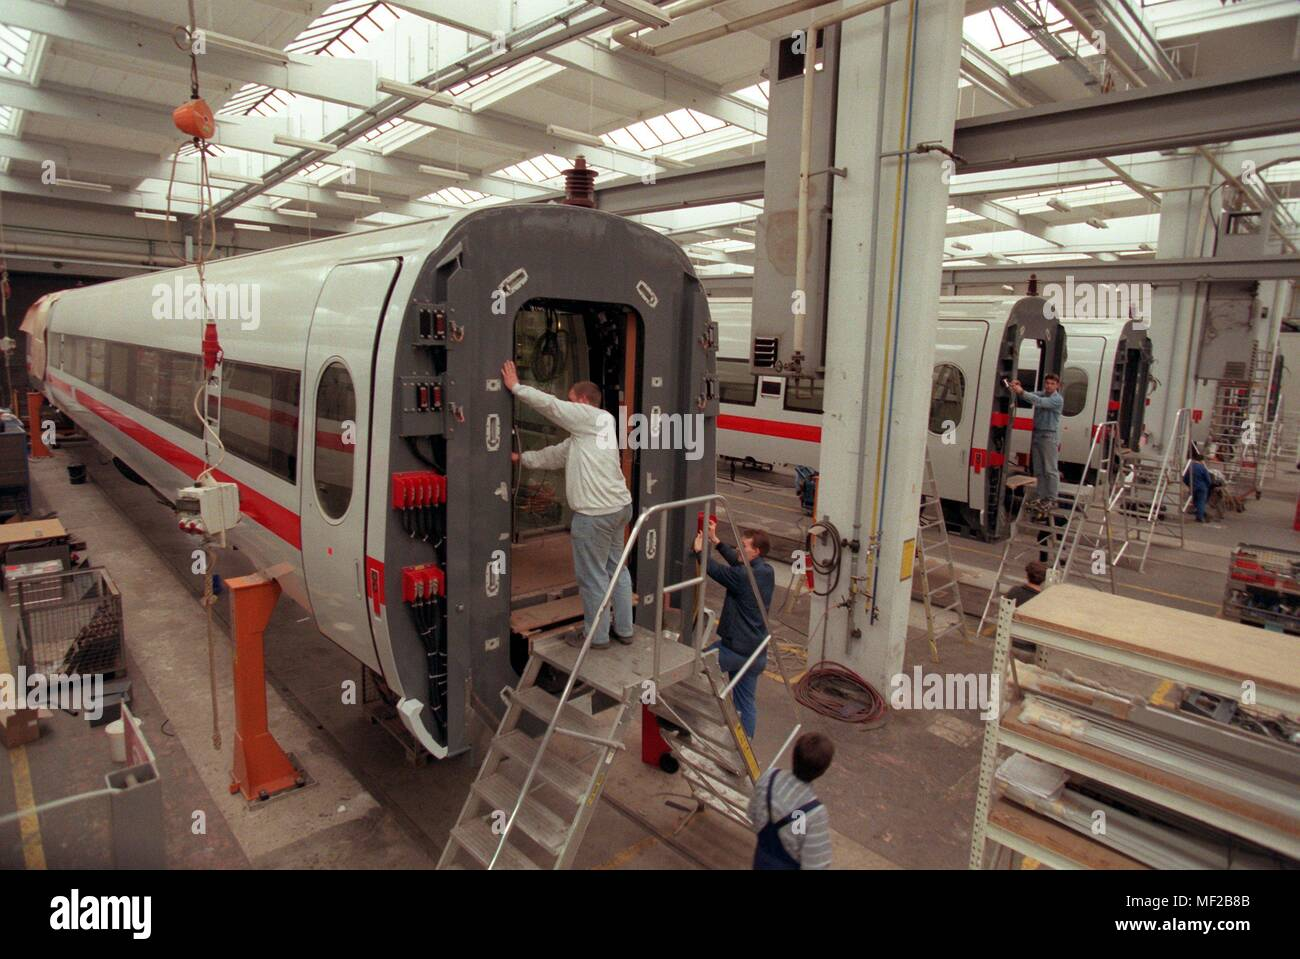 View into a workshop of the company Duewag in Krefeld-Uerdingen, in which 17.3.1998 ICE wagons are manufactured. On 18.3. is celebrating the 100th birthday of the 'Dusseldorf-Uerdinger Wagon Factory' - now part of the Siemens Group. With an order backlog of two billion DM, the Duewag breaks all its own records. Instead of 200 cars so far, 400 railway vehicles 'made in Uerdingen' are to be put on the rails every year. | usage worldwide - Stock Image